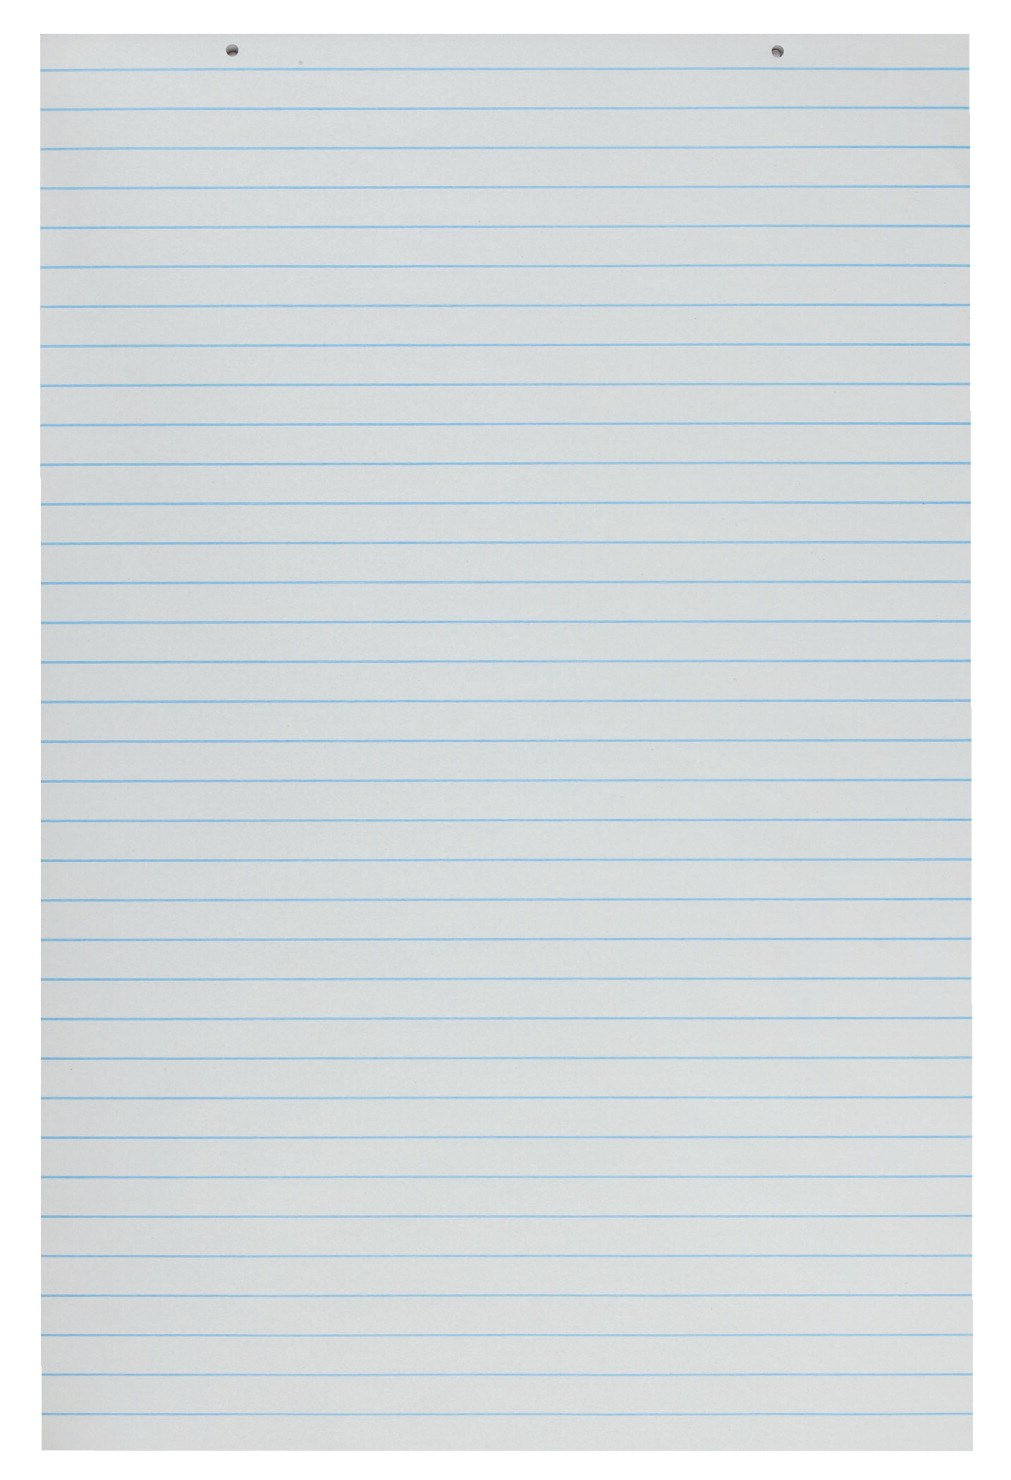 School Smart 48198 Primary Chart Paper Pads - 24 x 36 Ruled Short - Pack of 100